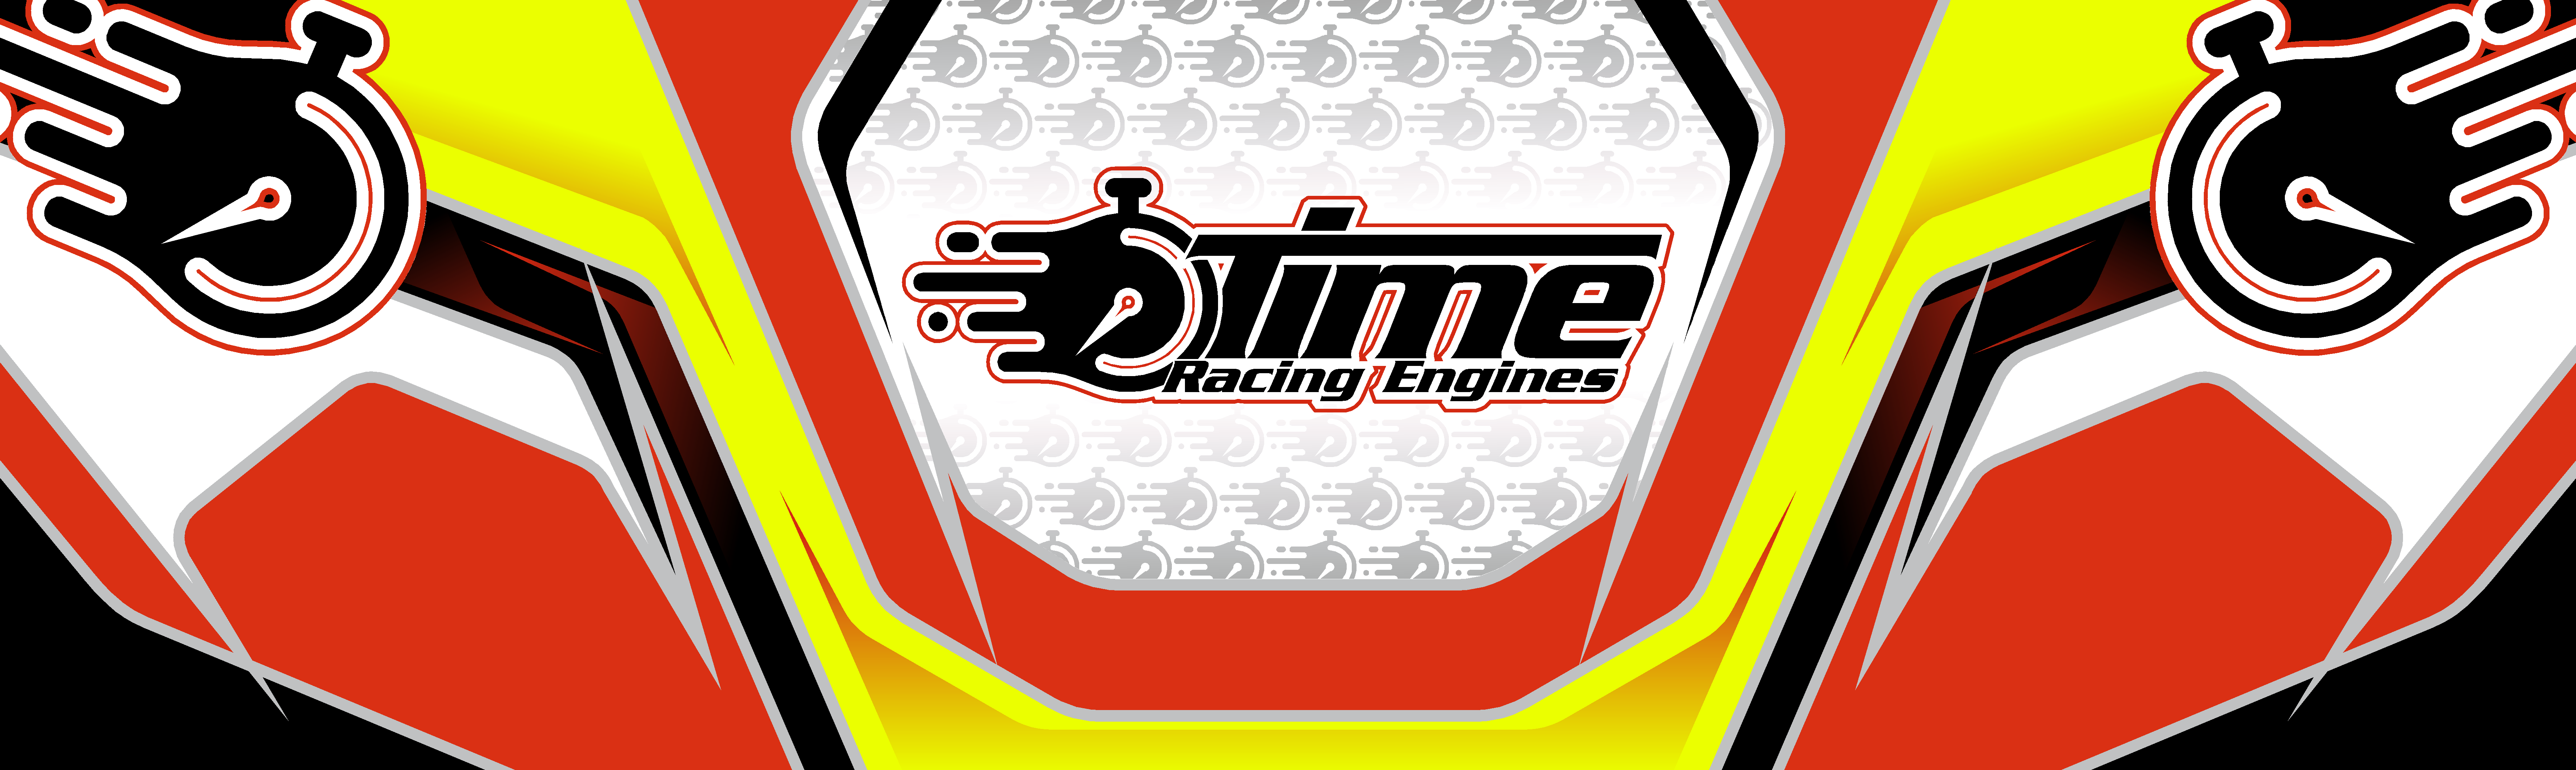 Time Racing Engines